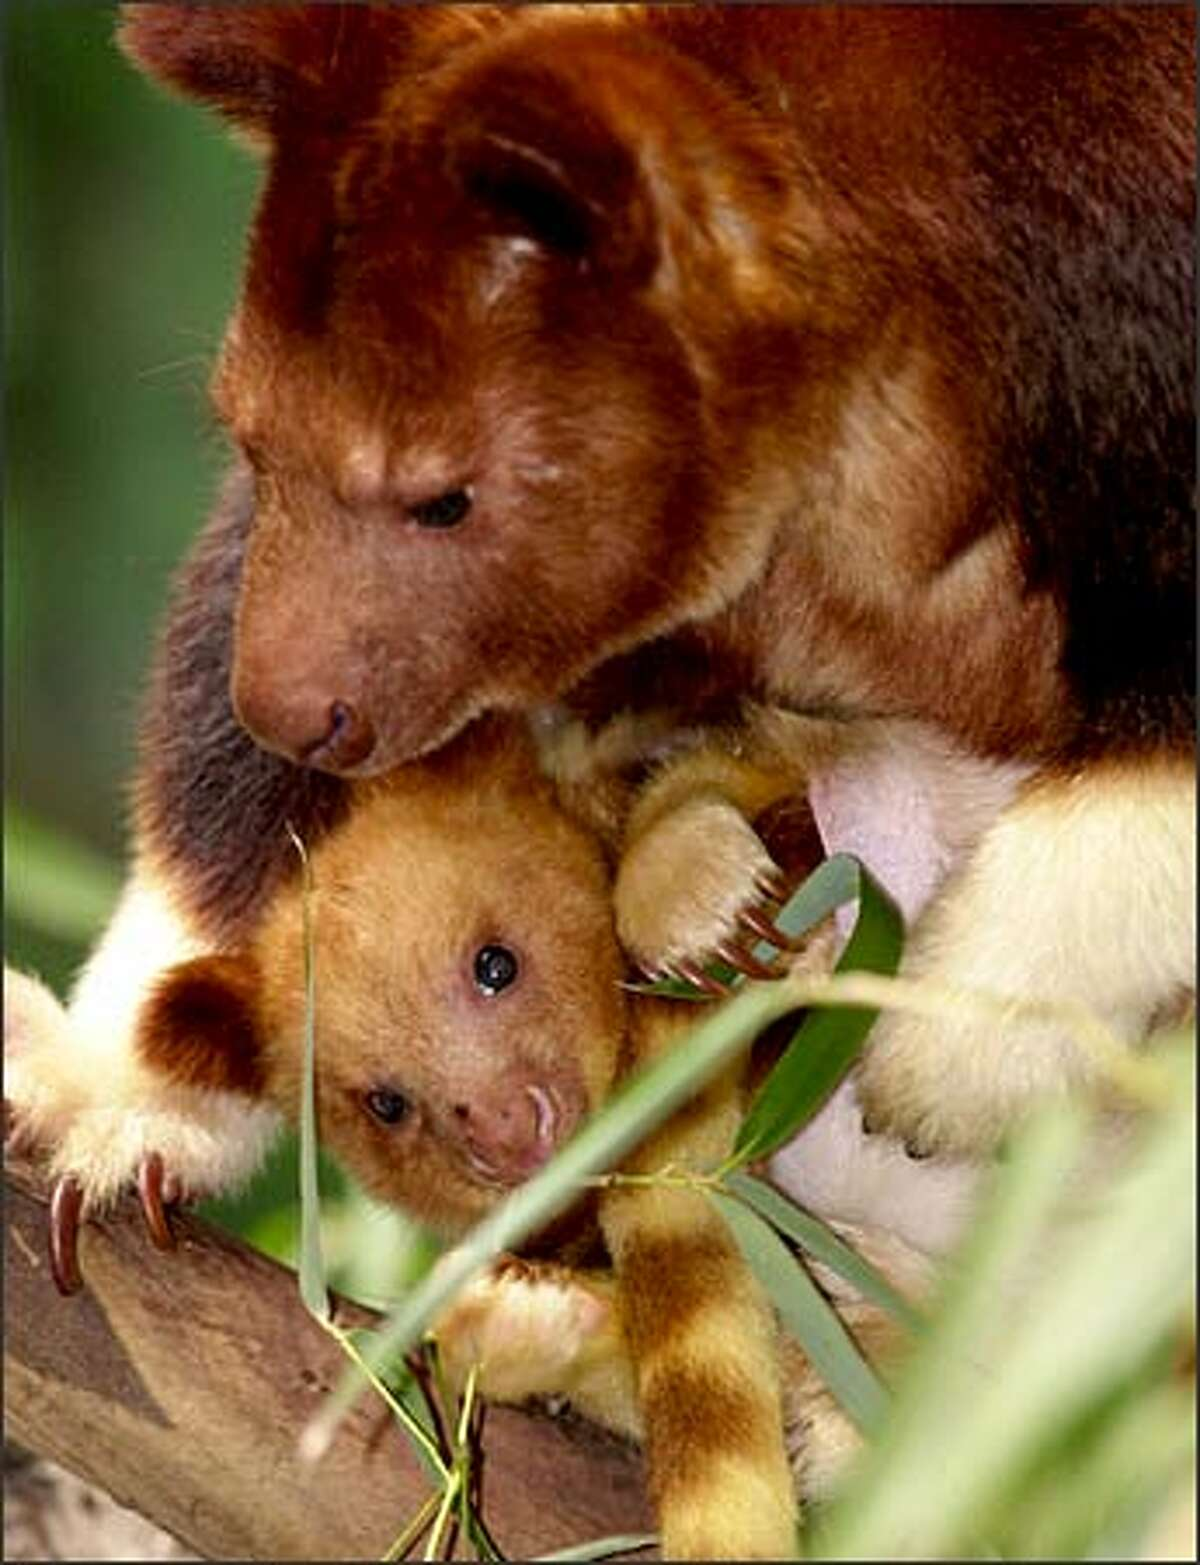 A baby Goodfellow's tree kangaroo peeks from its mother's pouch at the Cleveland Metroparks Zoo Tuesday in Cleveland. The rare marsupial, a native of New Guinea, was the size of a lima bean at birth in June 2002 and went undetected by zoo keepers for several months.